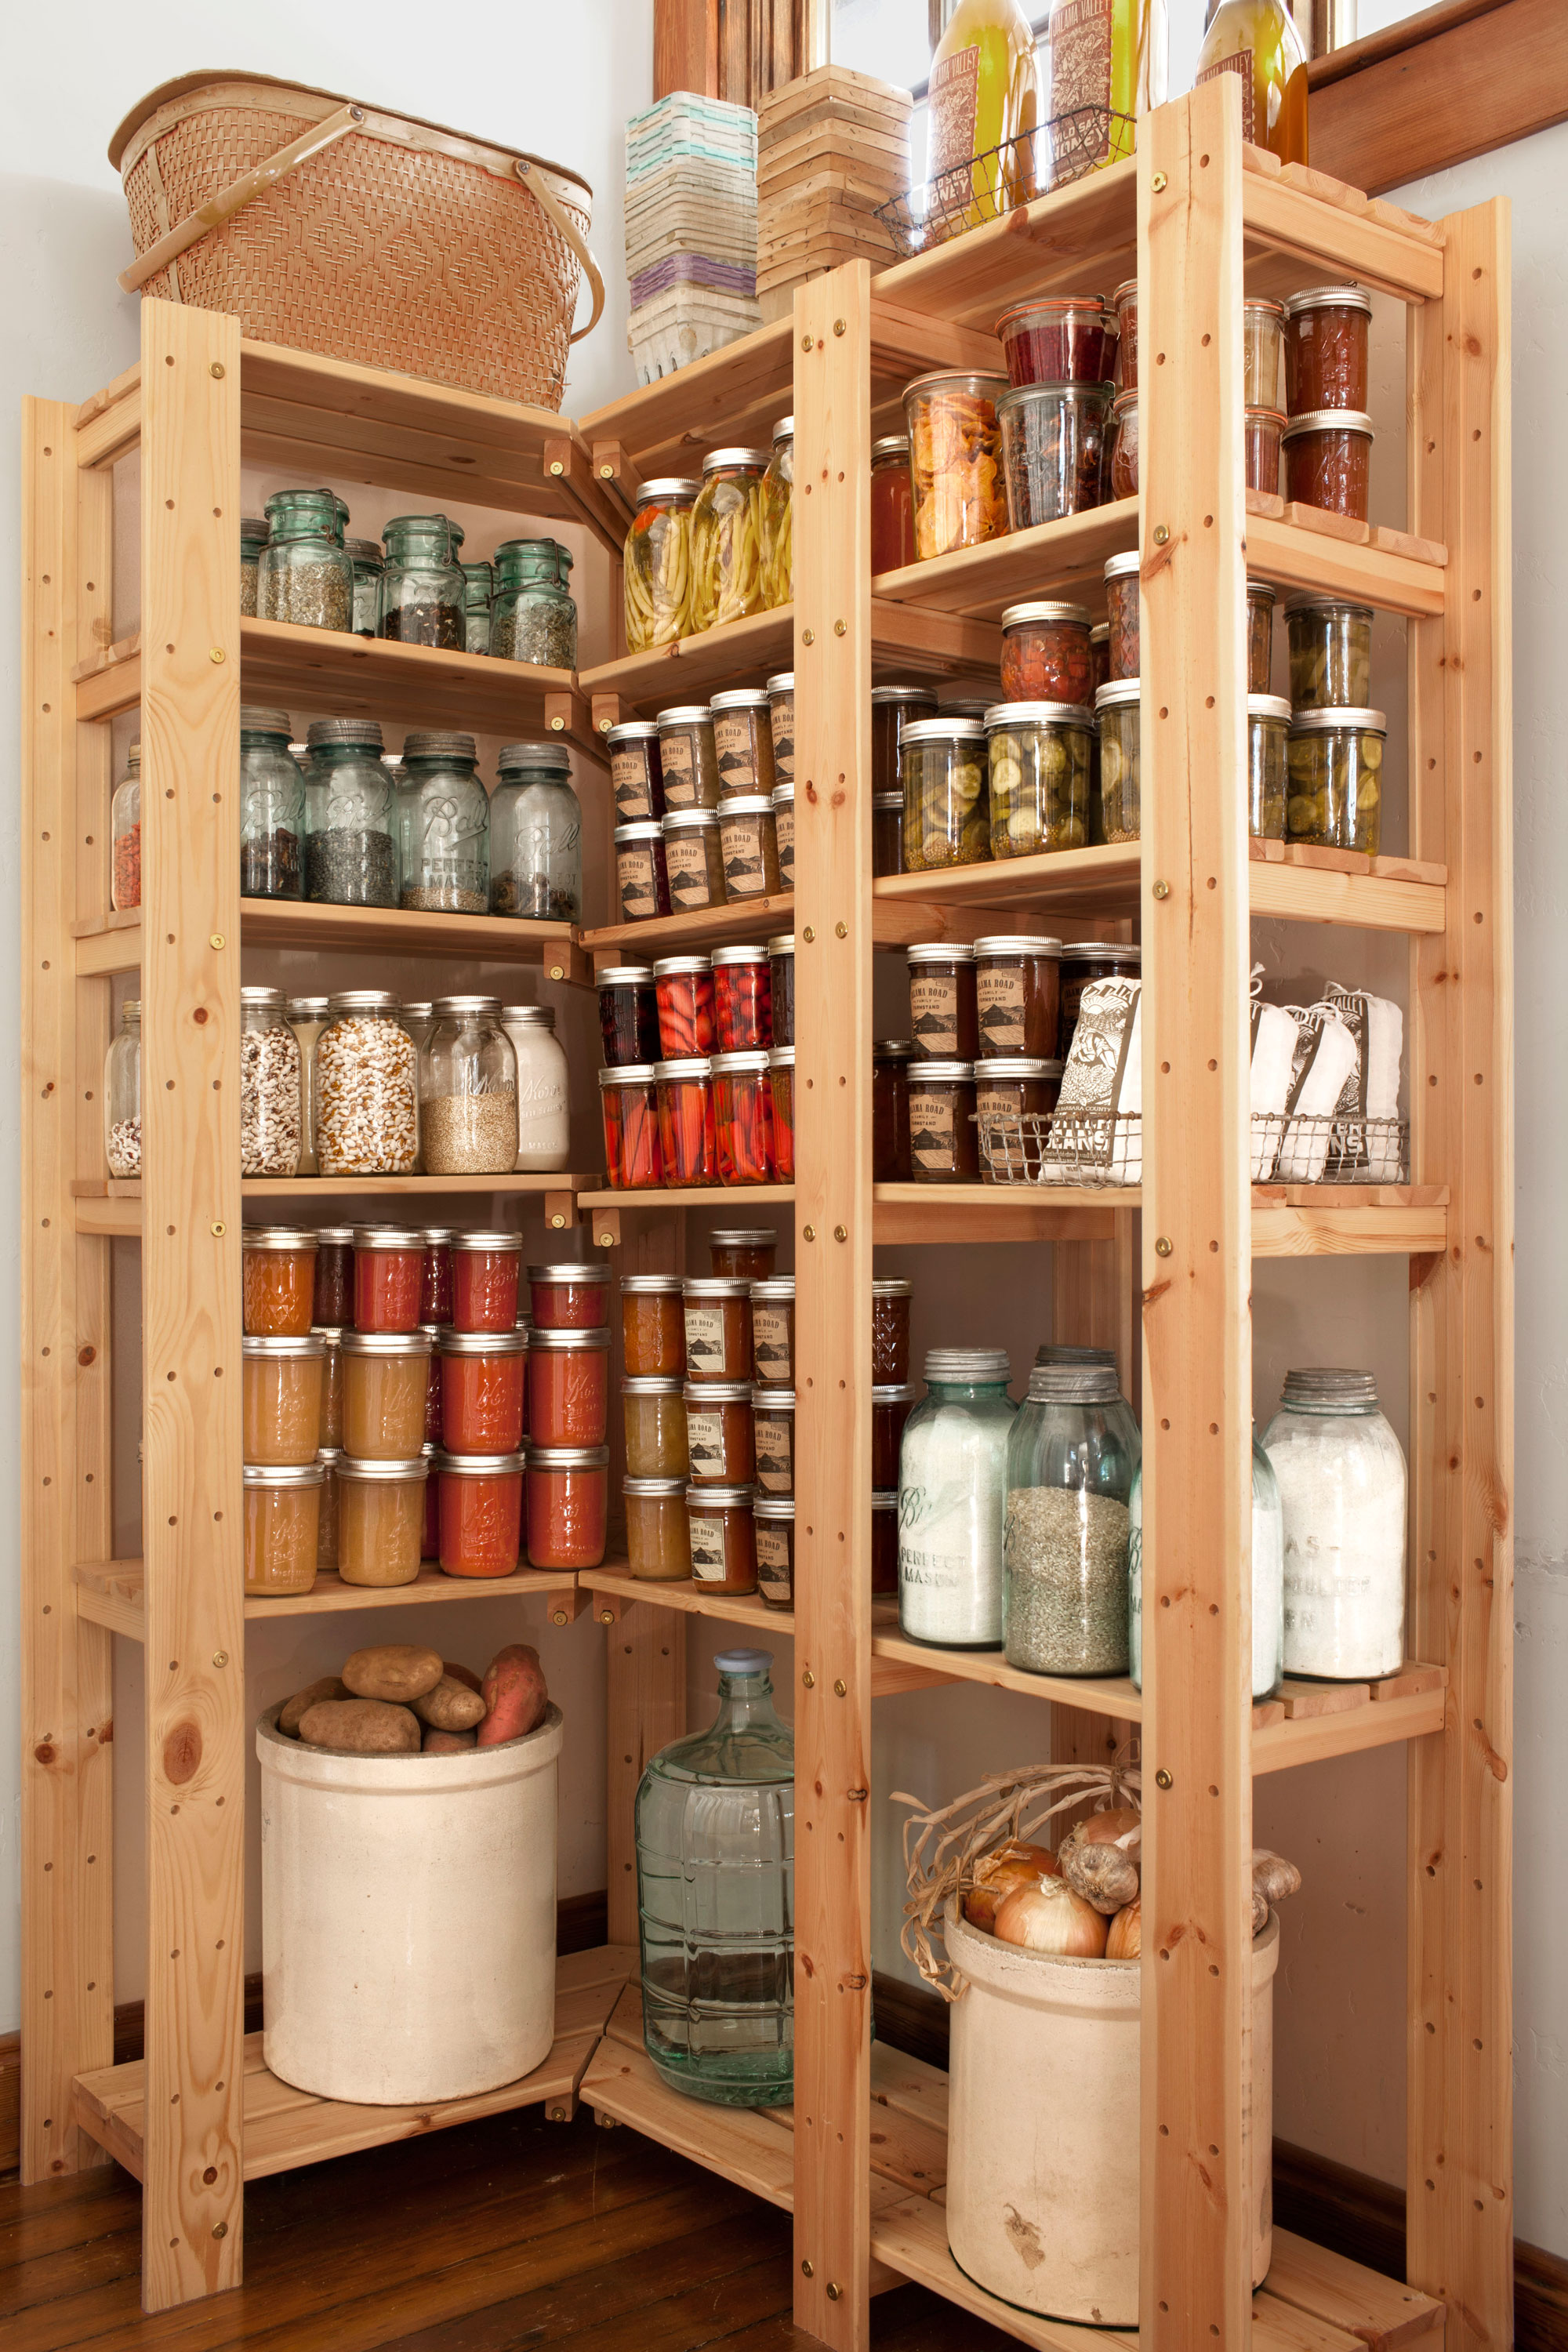 Kitchen Pantry Organization 14 Smart Ideas For Kitchen Pantry Organization Pantry Storage Ideas